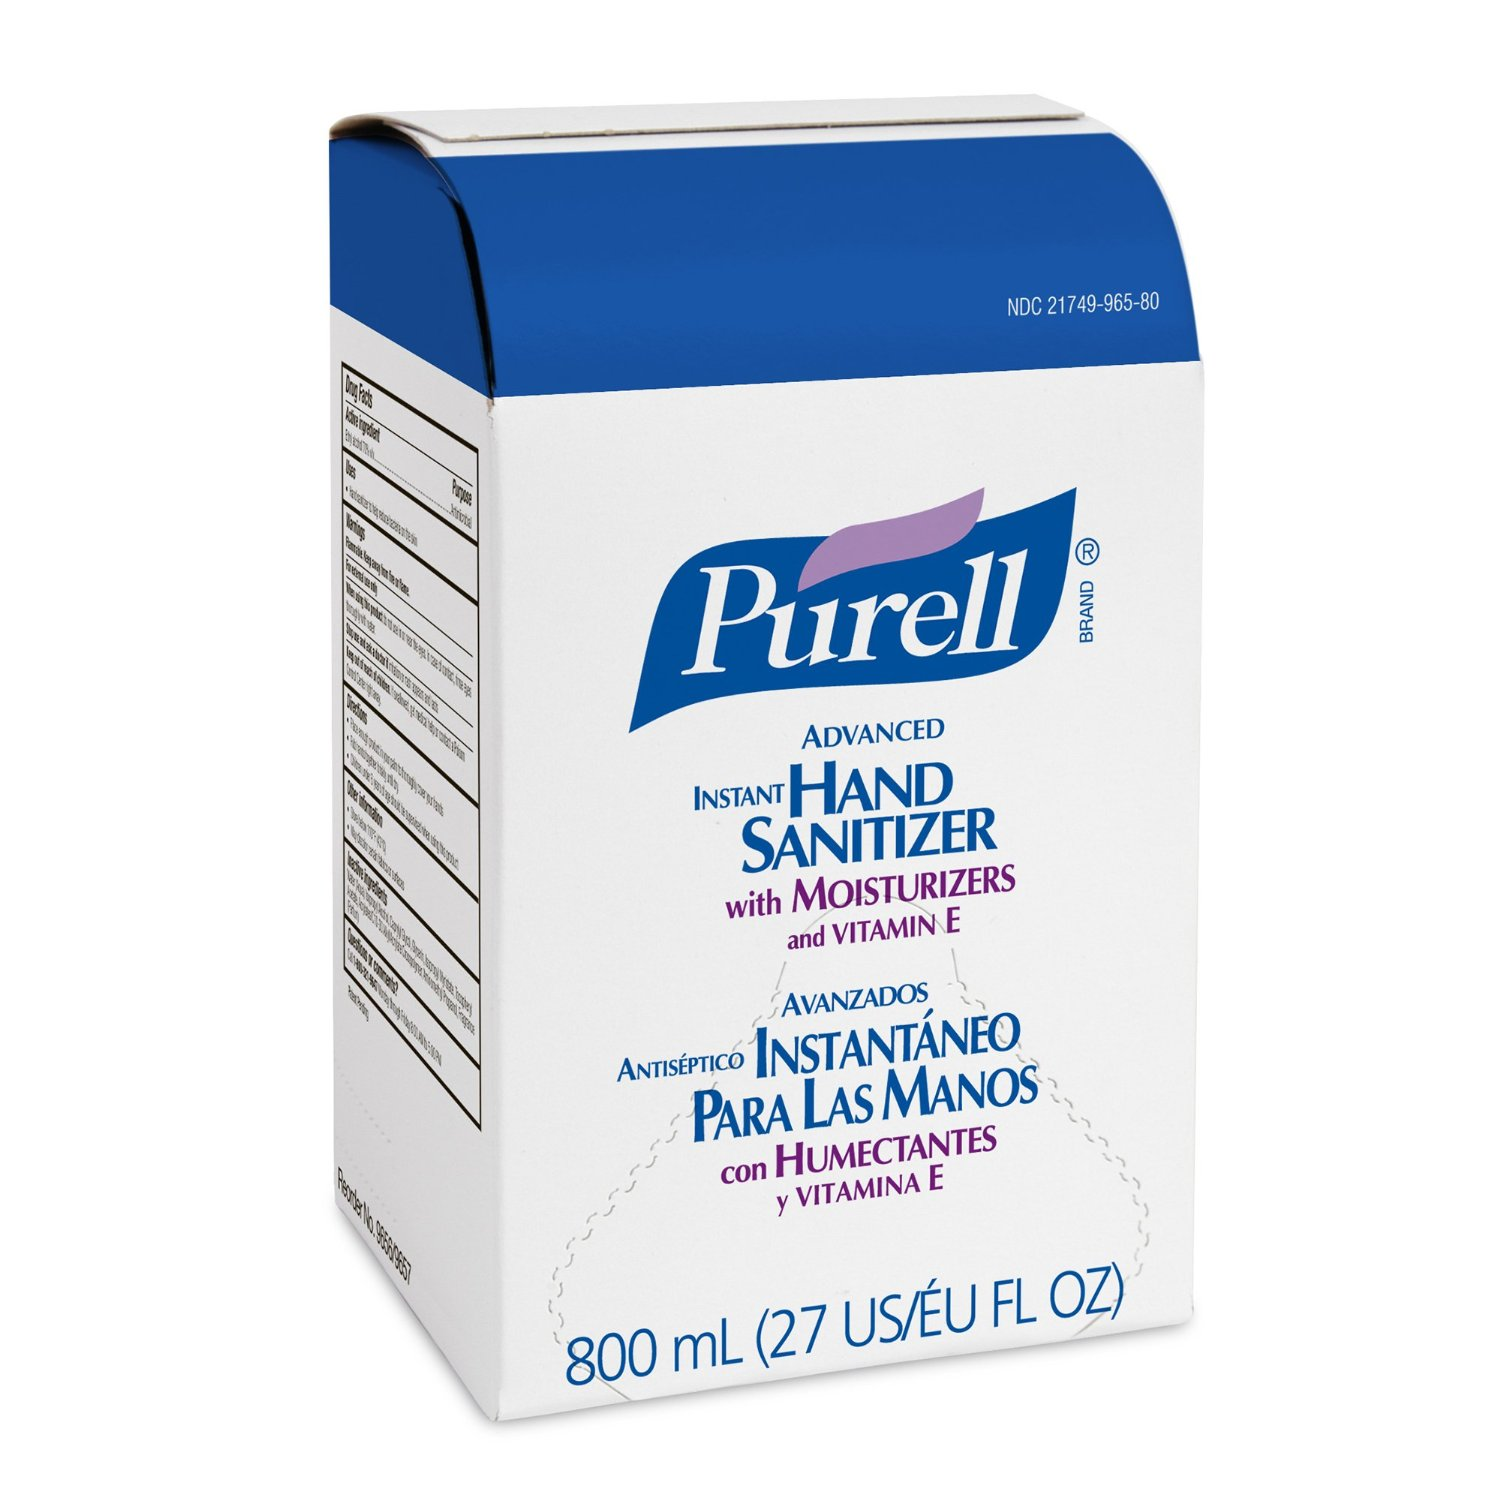 PURELL INSTANT HAND SANITIZER 800 ML REFILLS- 6/CS